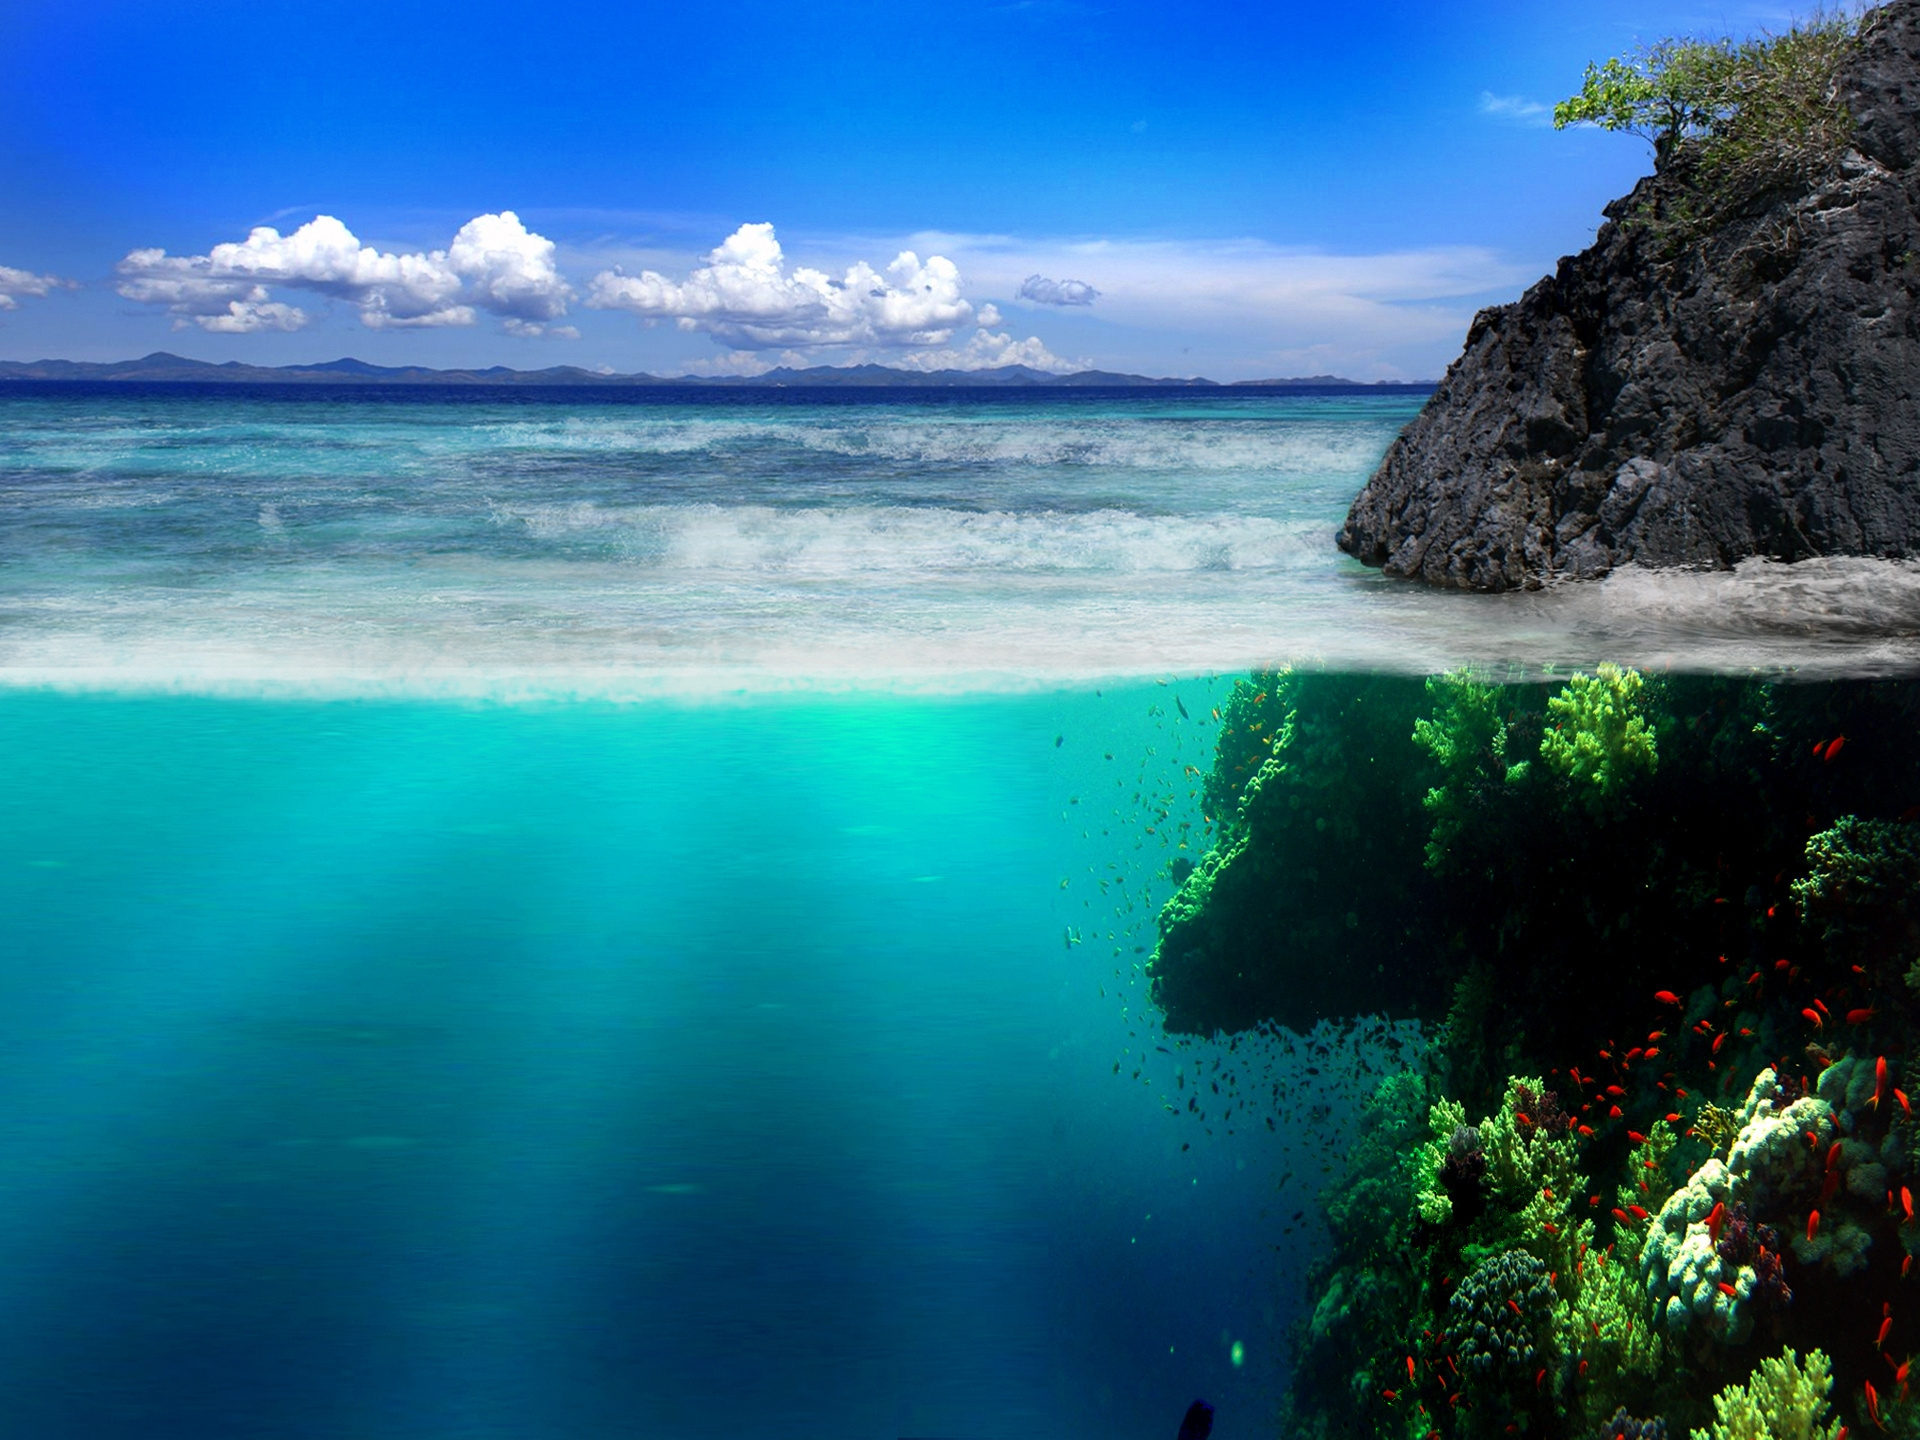 151664 download wallpaper Nature, Sea, Shore, Bank, Rocks, Underwater World, Vegetation, Fish screensavers and pictures for free